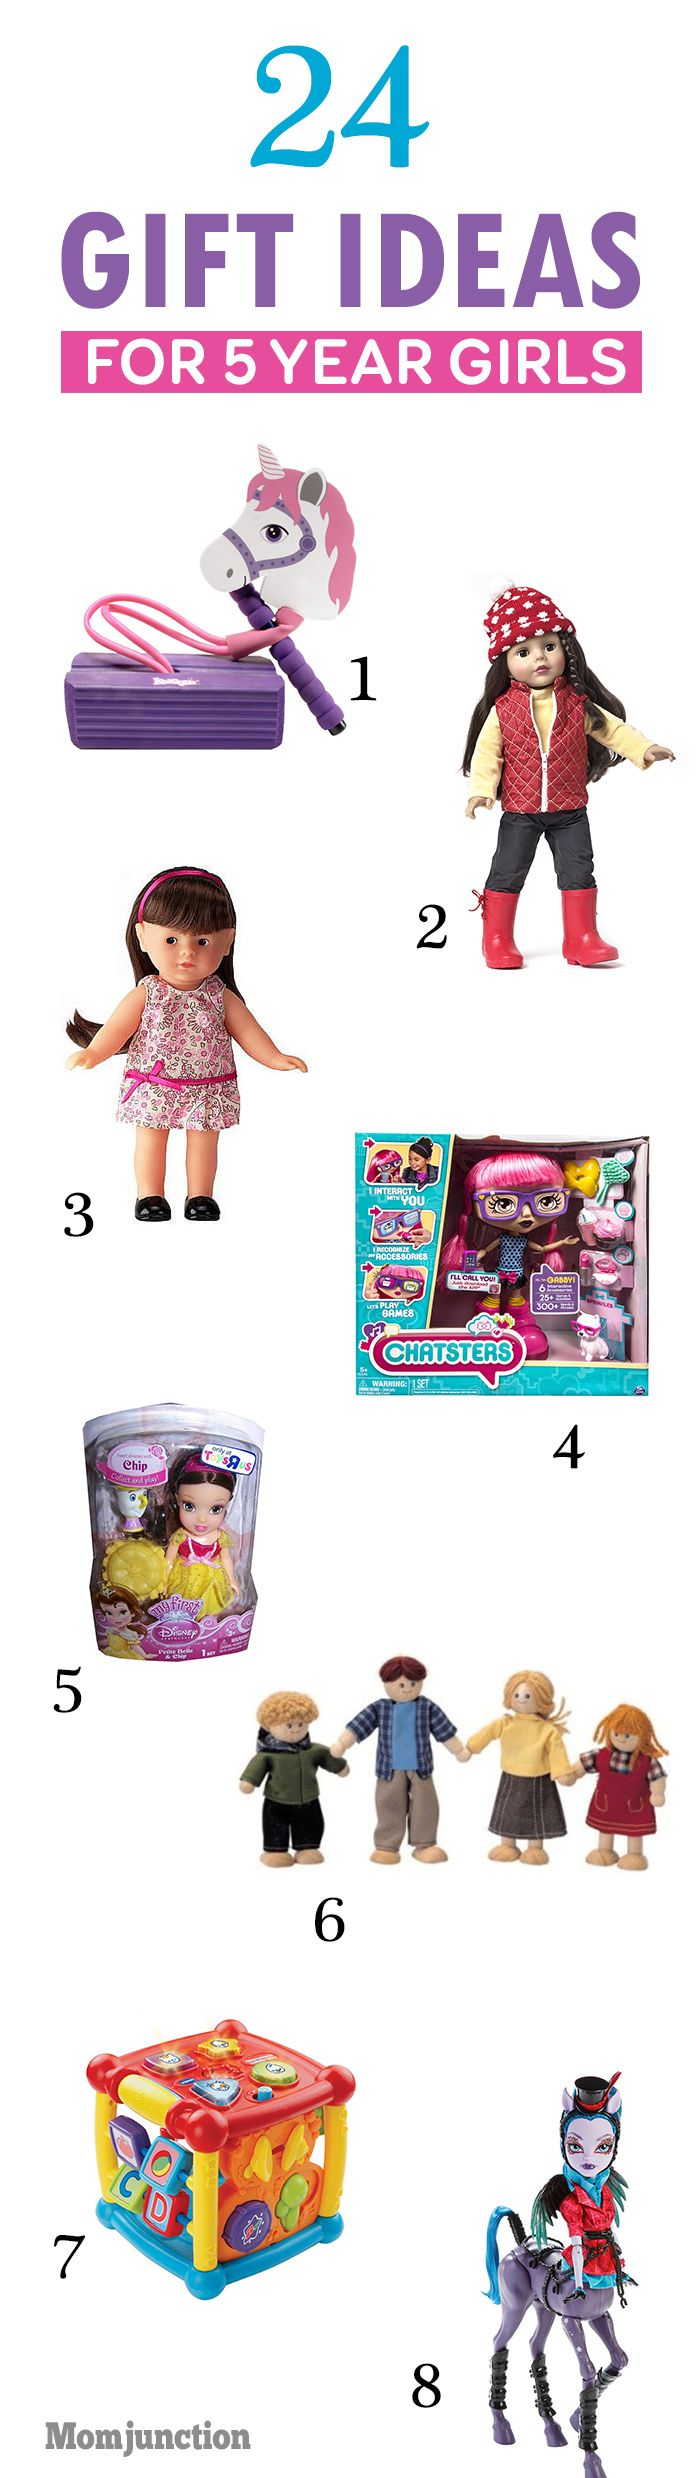 31 Best Gifts For 5 Year Old Girls To Buy In 2019